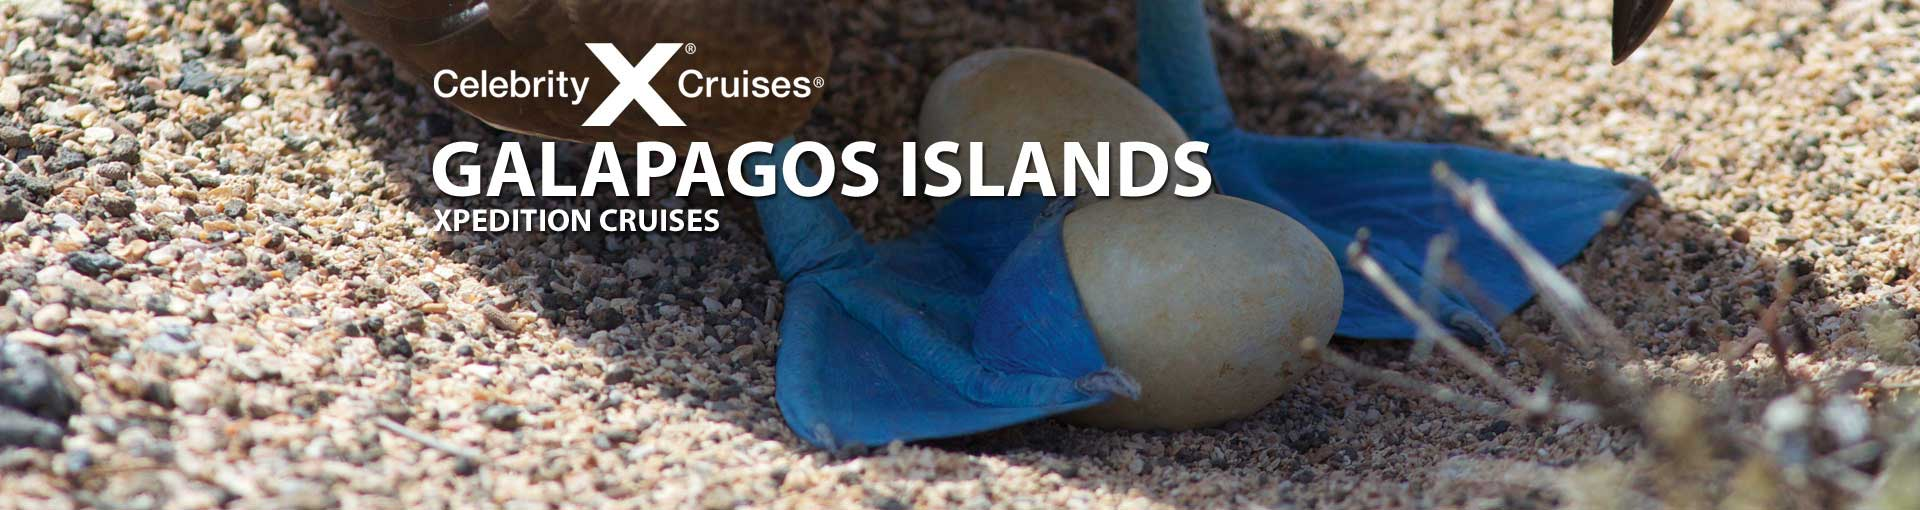 Celebrity Cruises Galapagos Islands Xpeditions